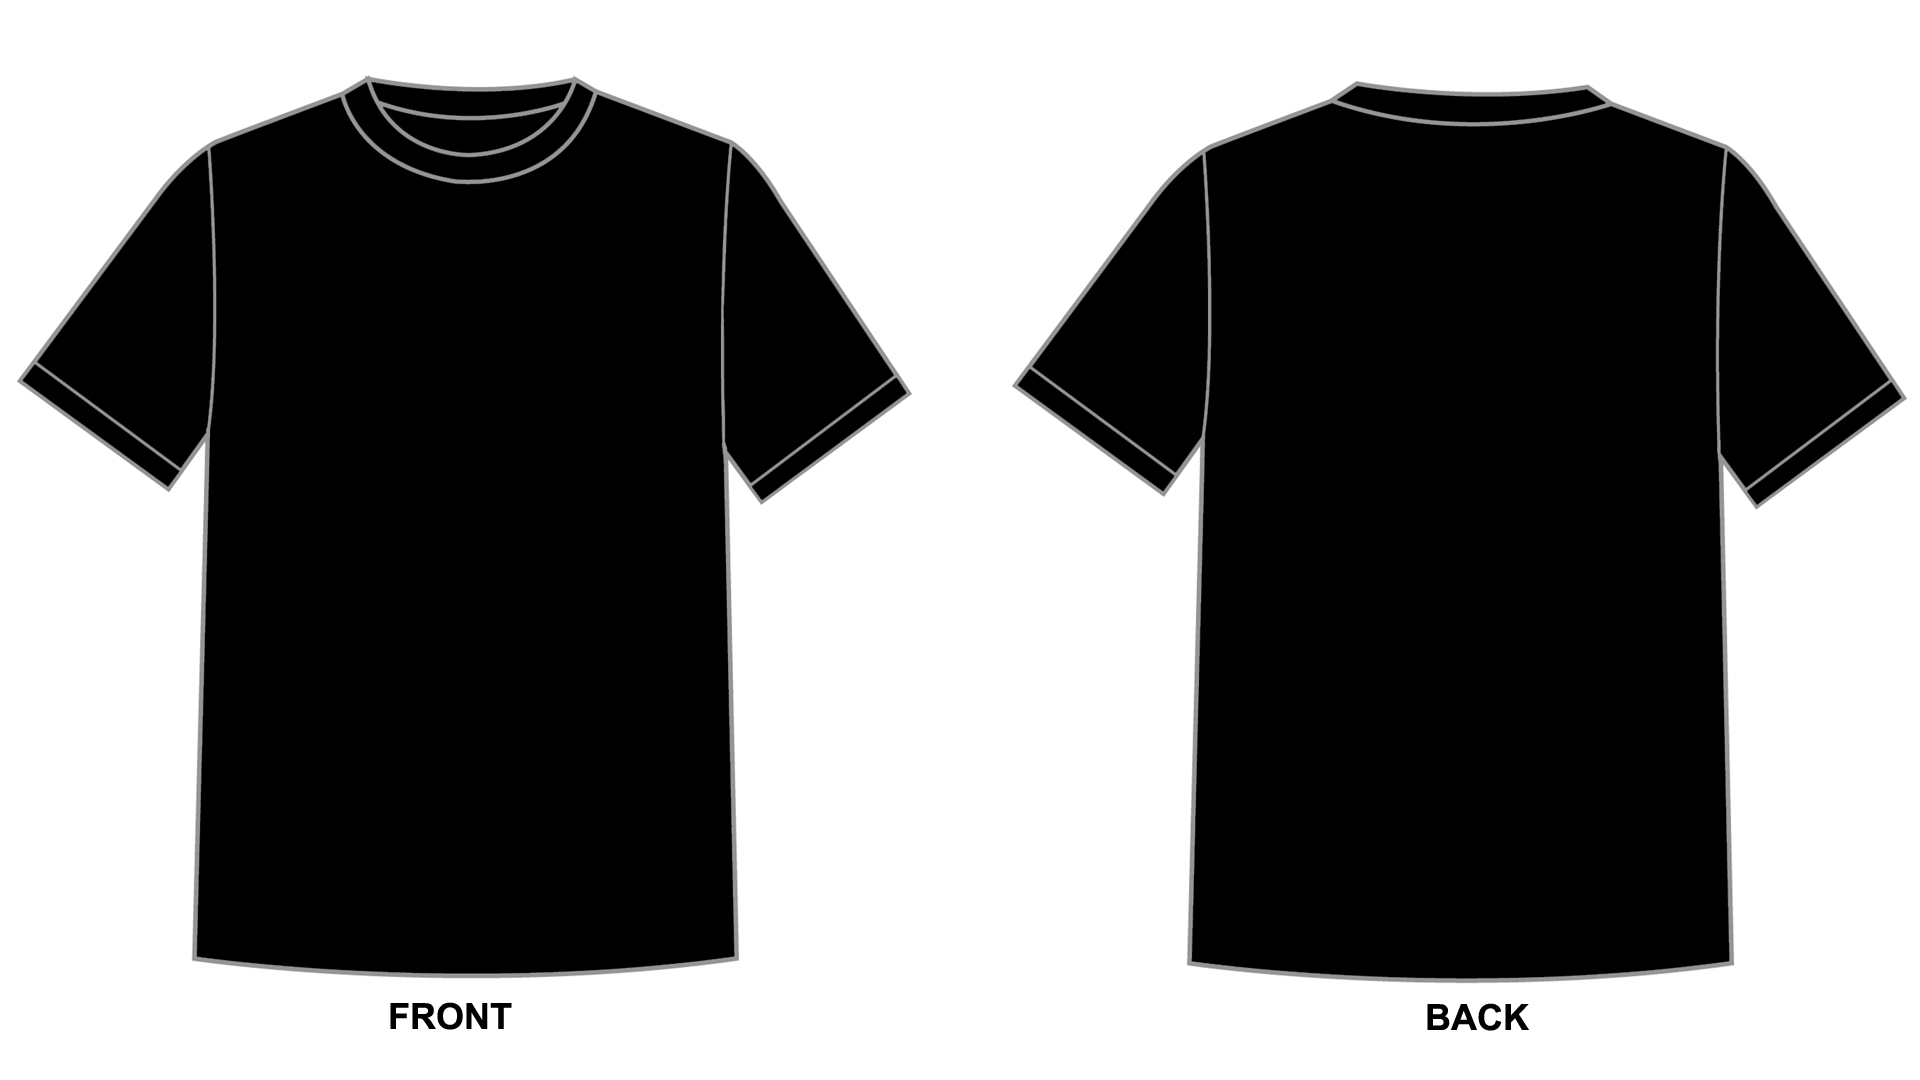 Black t shirt model template - Available Downloads